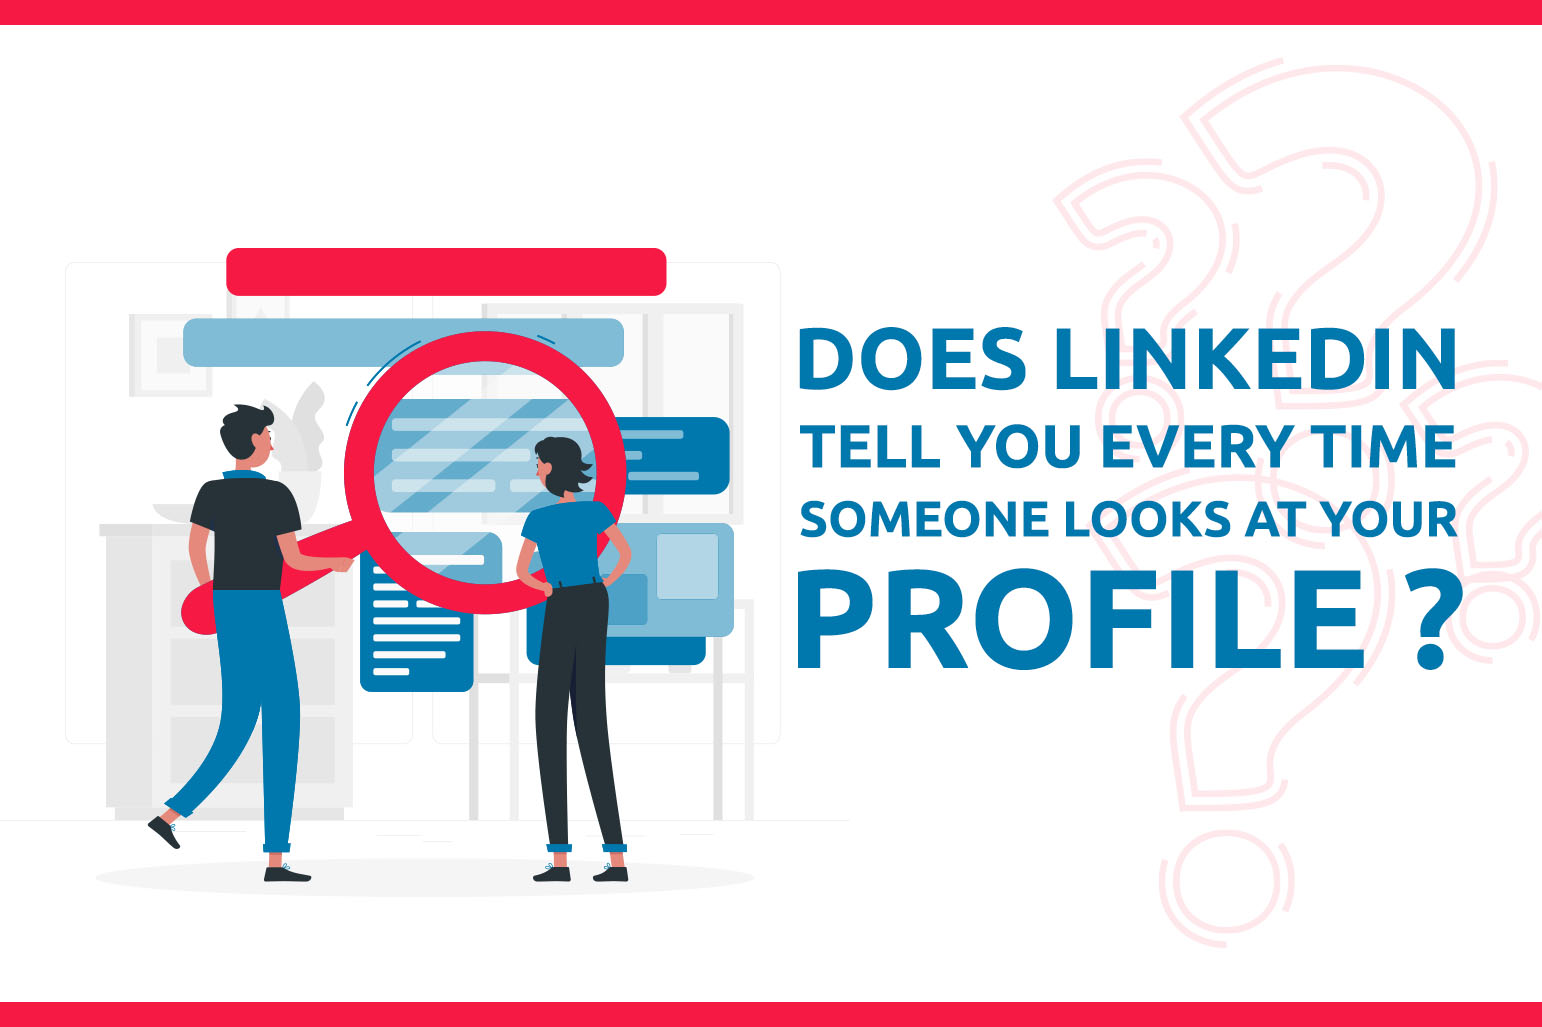 Does LinkedIn Tell You Every Time Someone Looks At Your Profile?